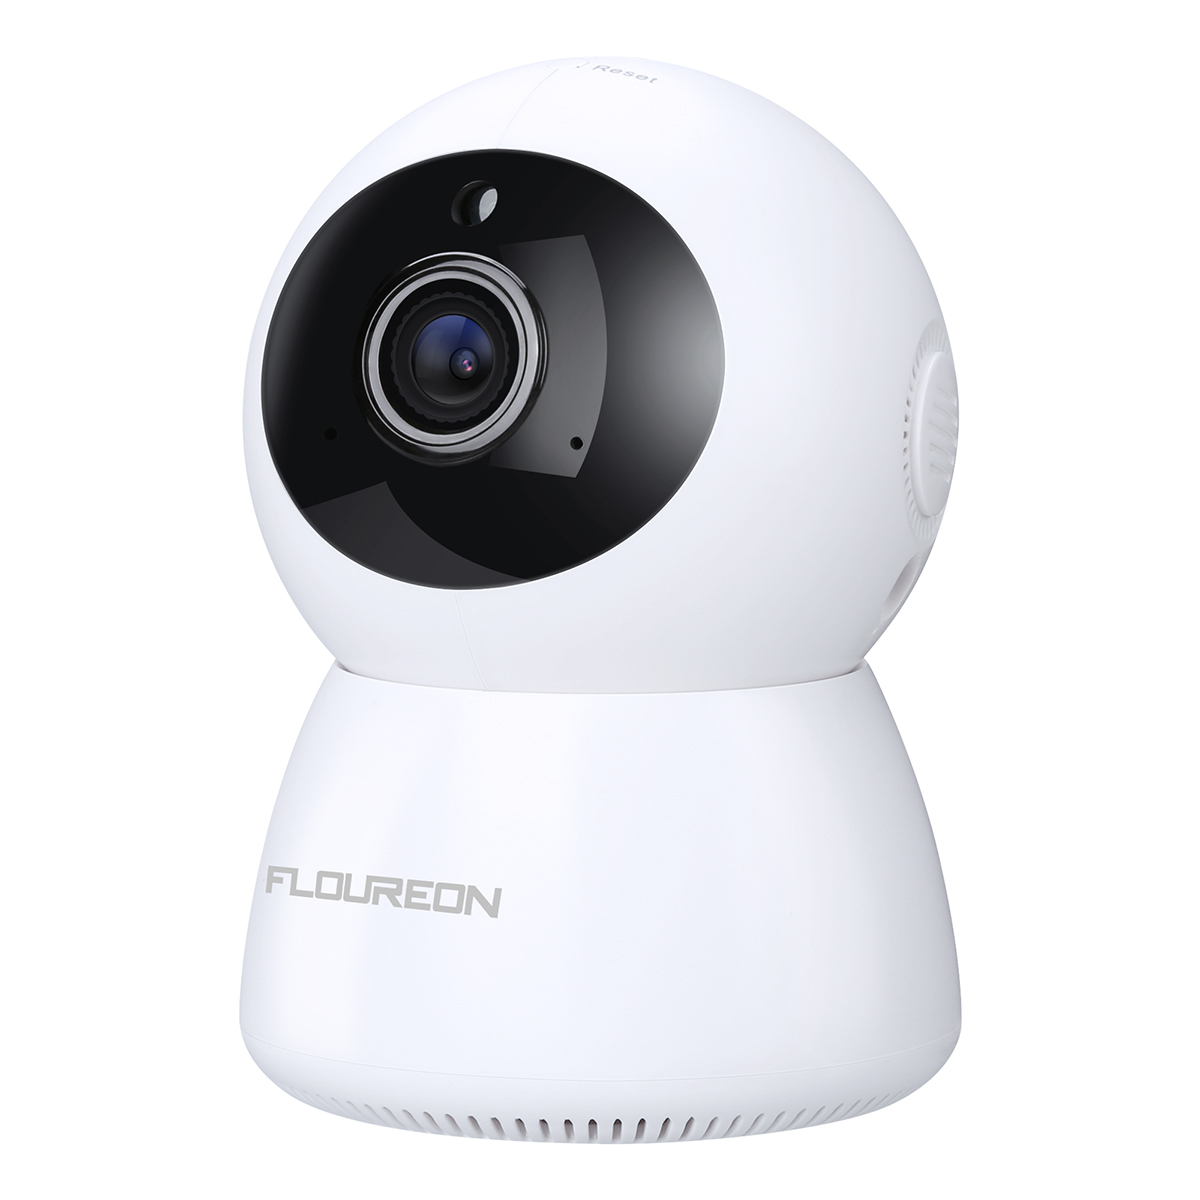 FLOUREON 1080P Wireless Security IP Panoramic Camera Two-Way Audio Night Vision Home Video Surveillance System IP CameraFLOUREON 1080P Wireless Security IP Panoramic Camera Two-Way Audio Night Vision Home Video Surveillance System IP Camera